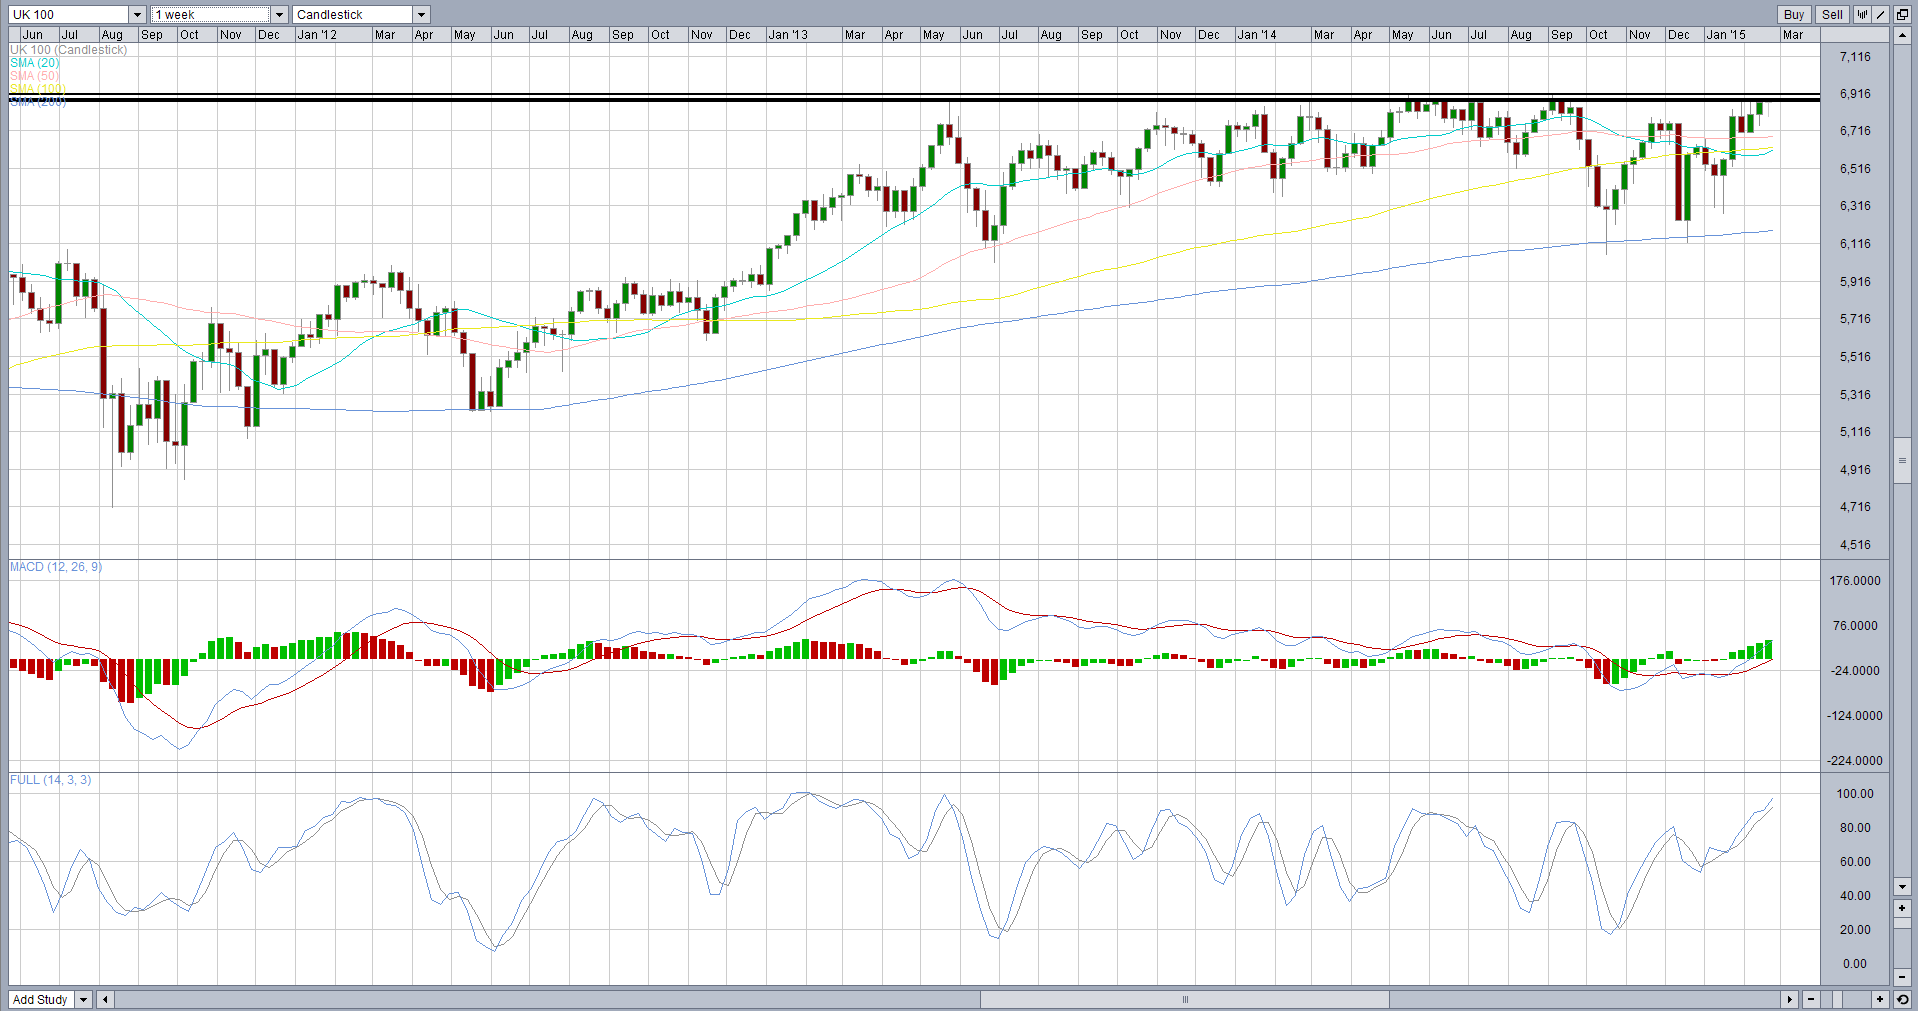 FTSE100 Weekly Graph